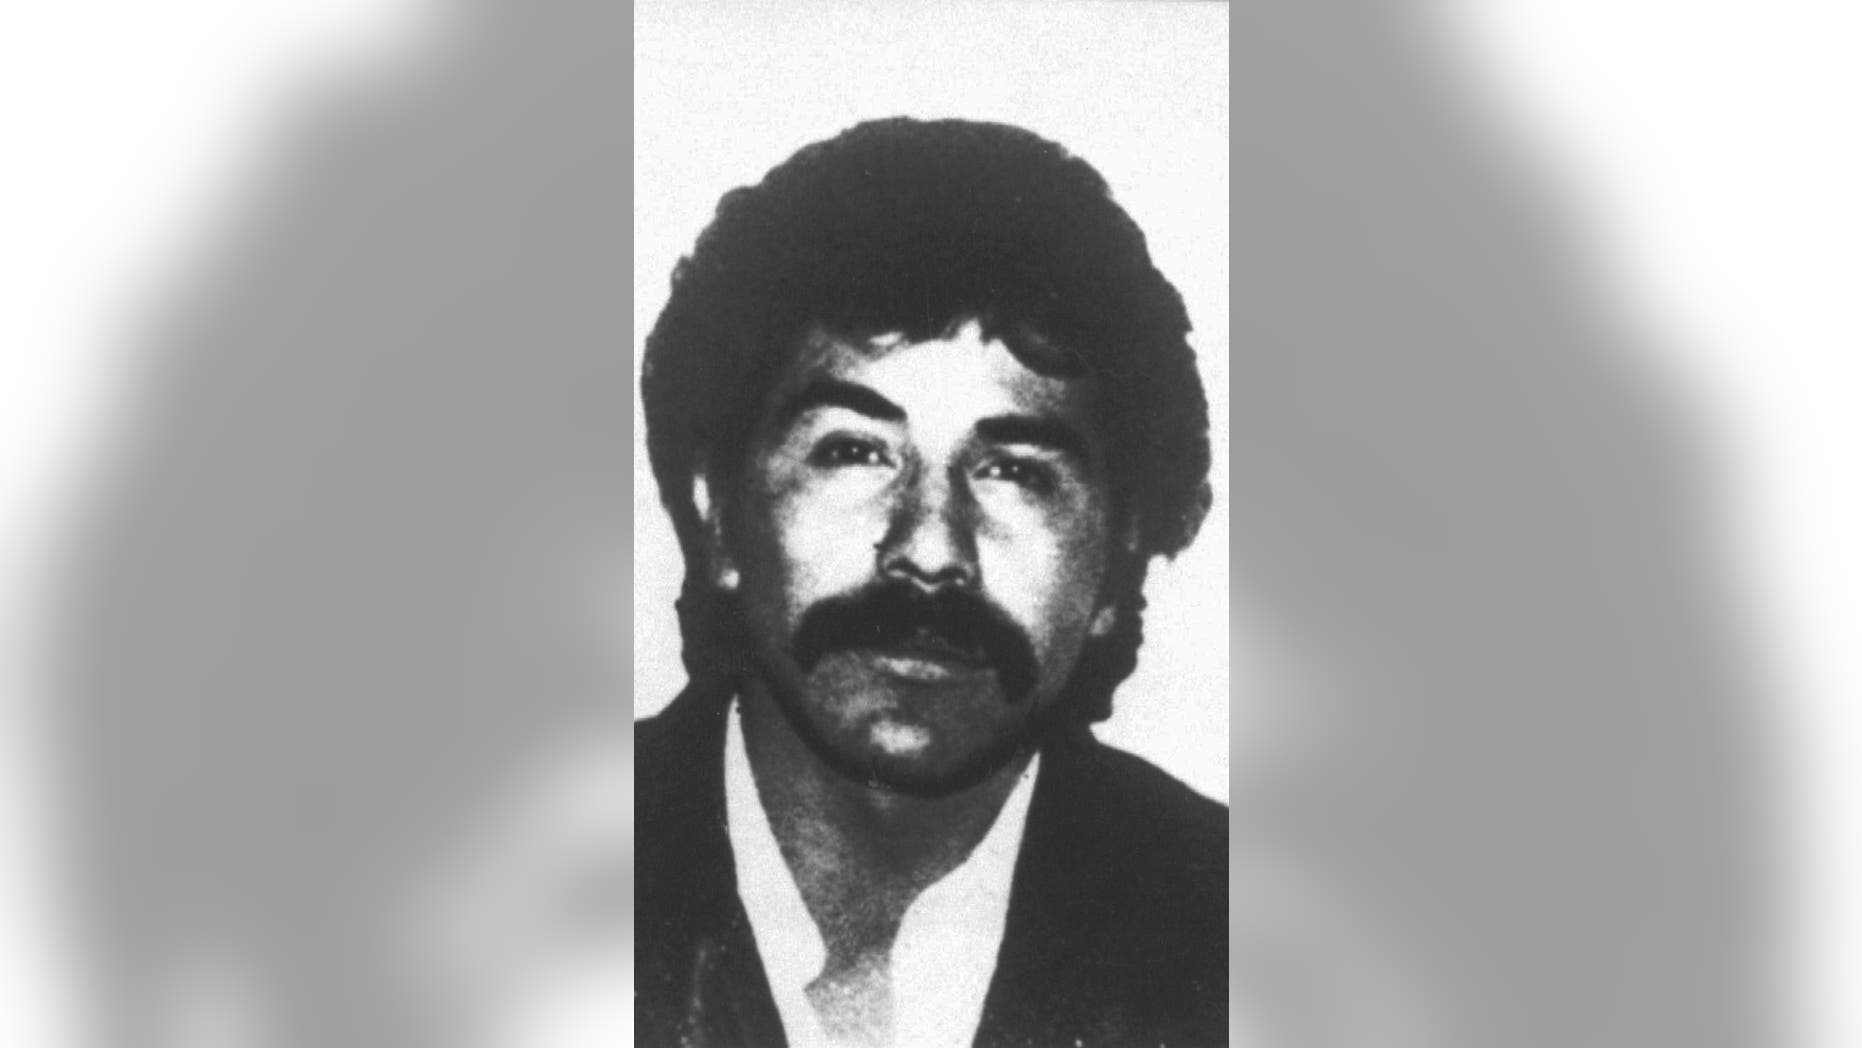 FILE - This undated file photo provided by Mexico's government shows drug lord Rafael Caro Quintero in an unknown location. Chihuahua Attorney General Jorge Gonzalez told reporters on Monday, July 4, 2016 that the old-guard drug lord mistakenly released in 2013 is apparently trying to get back into the drug trade. (Mexico's government via AP/File)